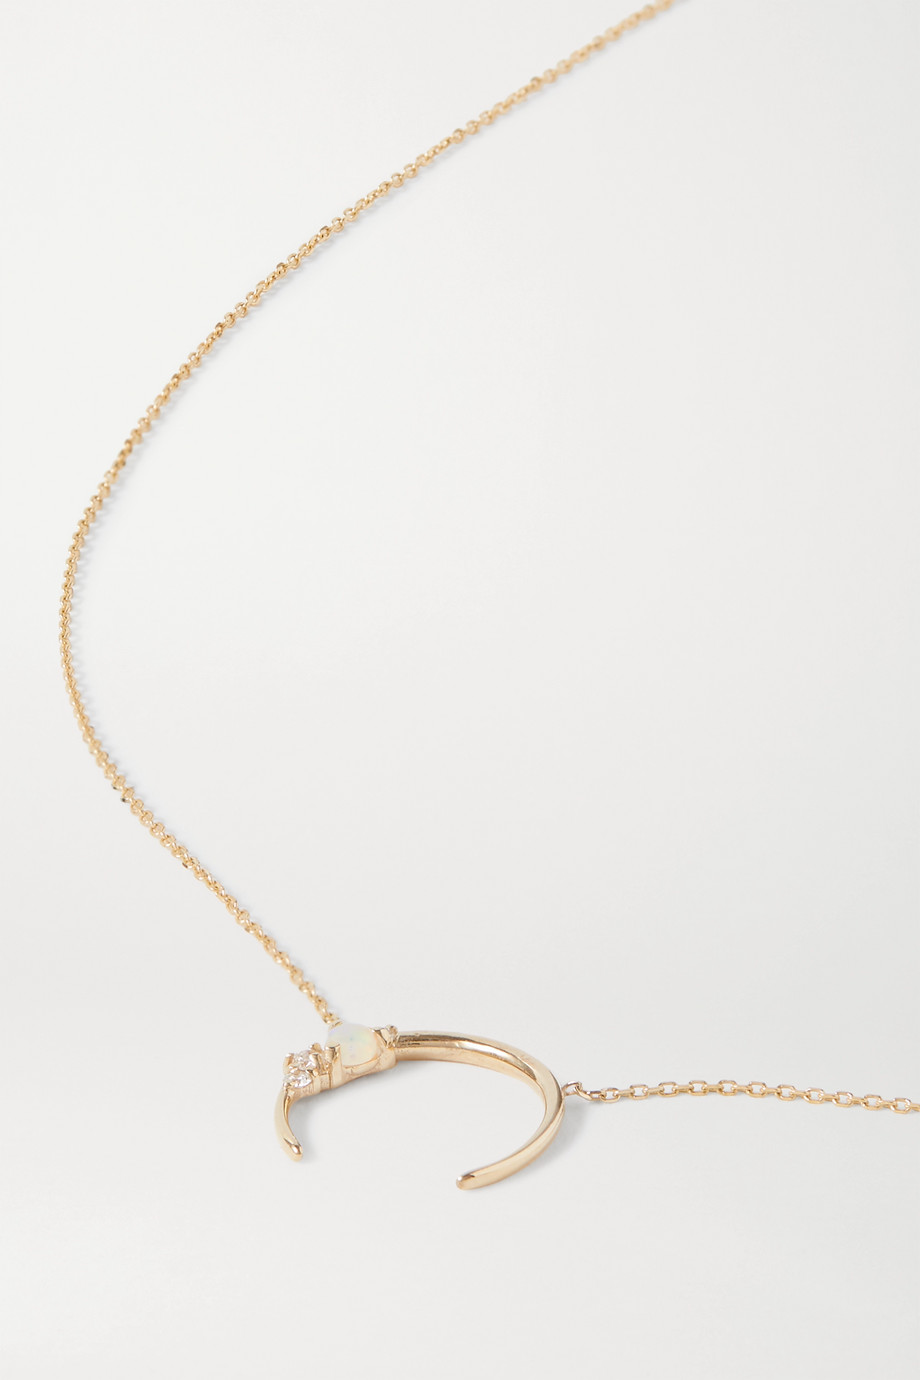 SARAH & SEBASTIAN Chroma 10-karat gold, diamond and opal necklace